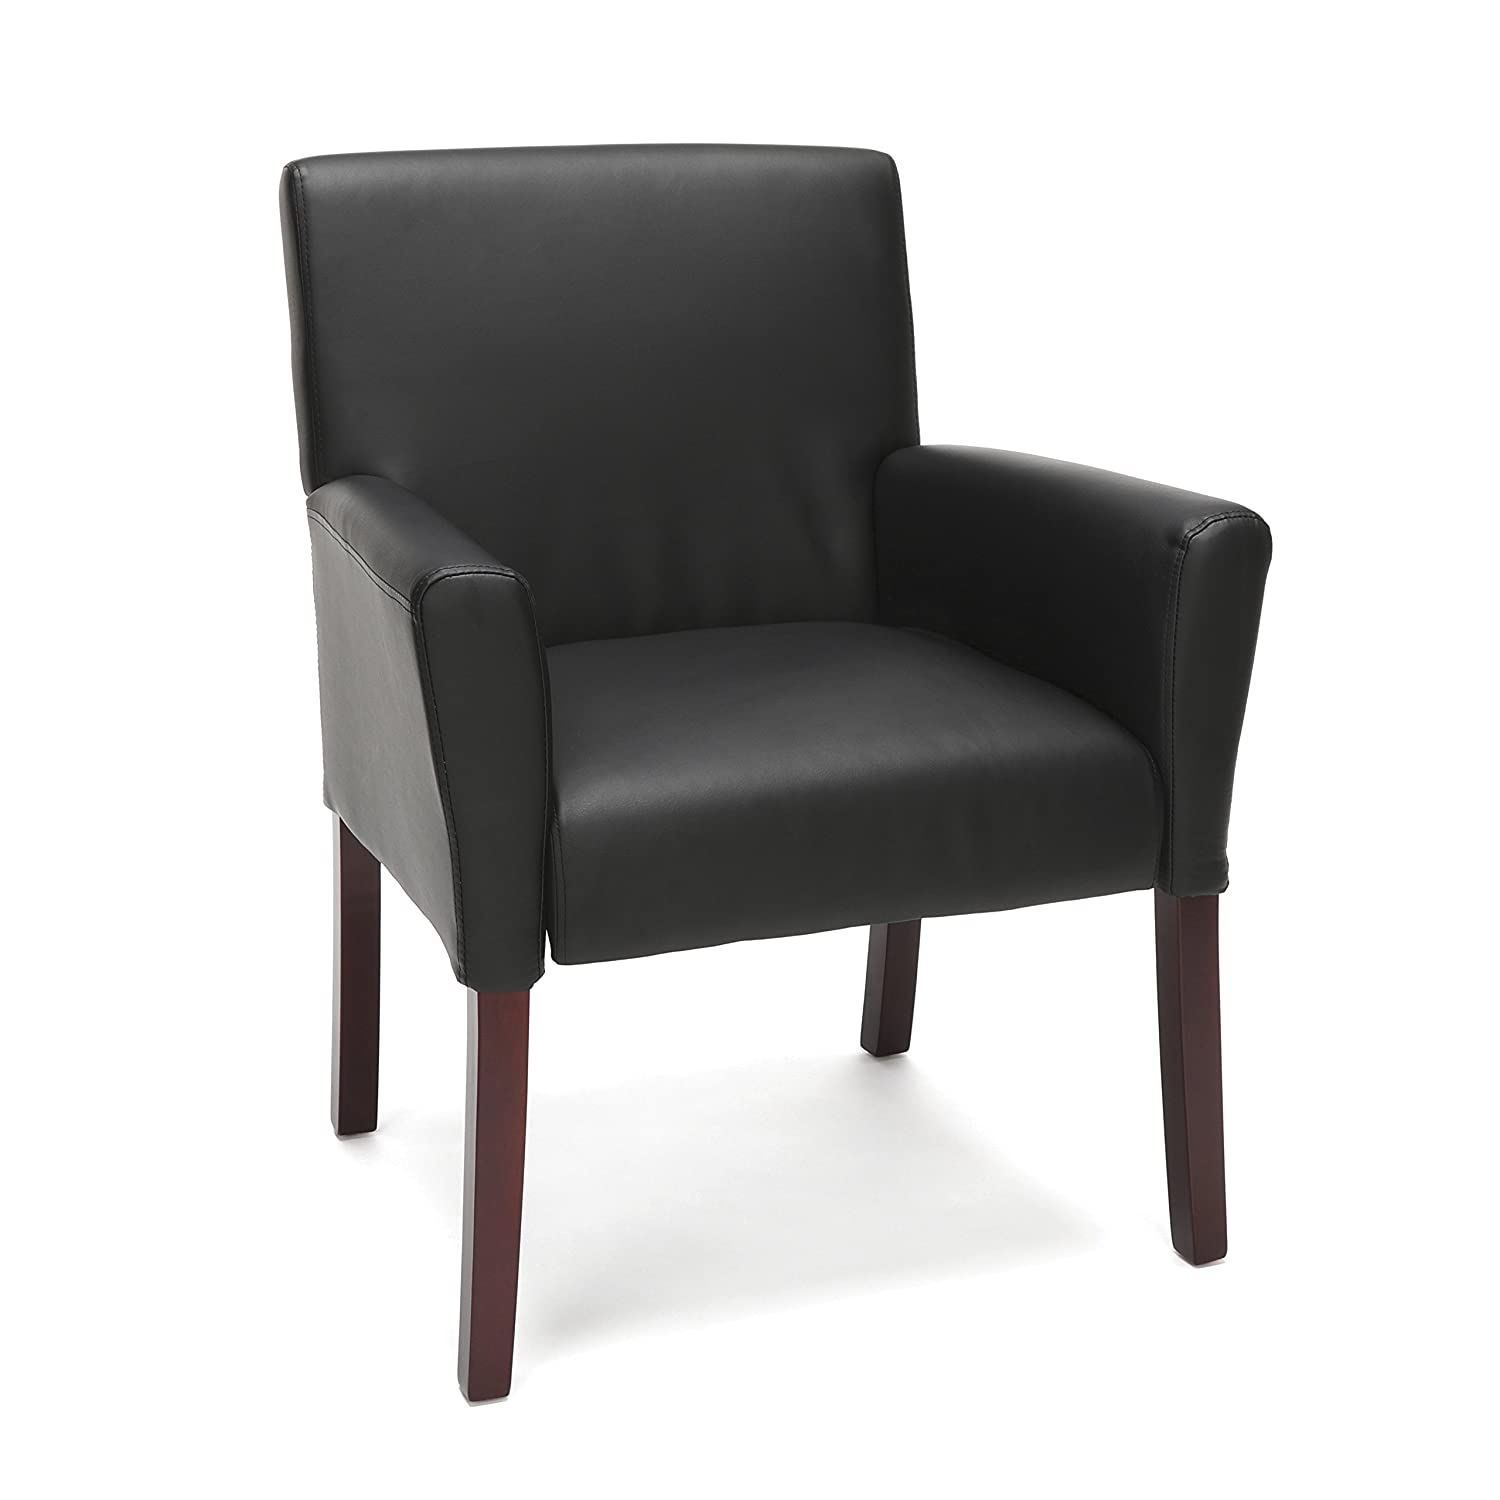 OFM Essentials Collection Bonded Leather Executive Guest Chair with Arms and Wooden Legs, in Black